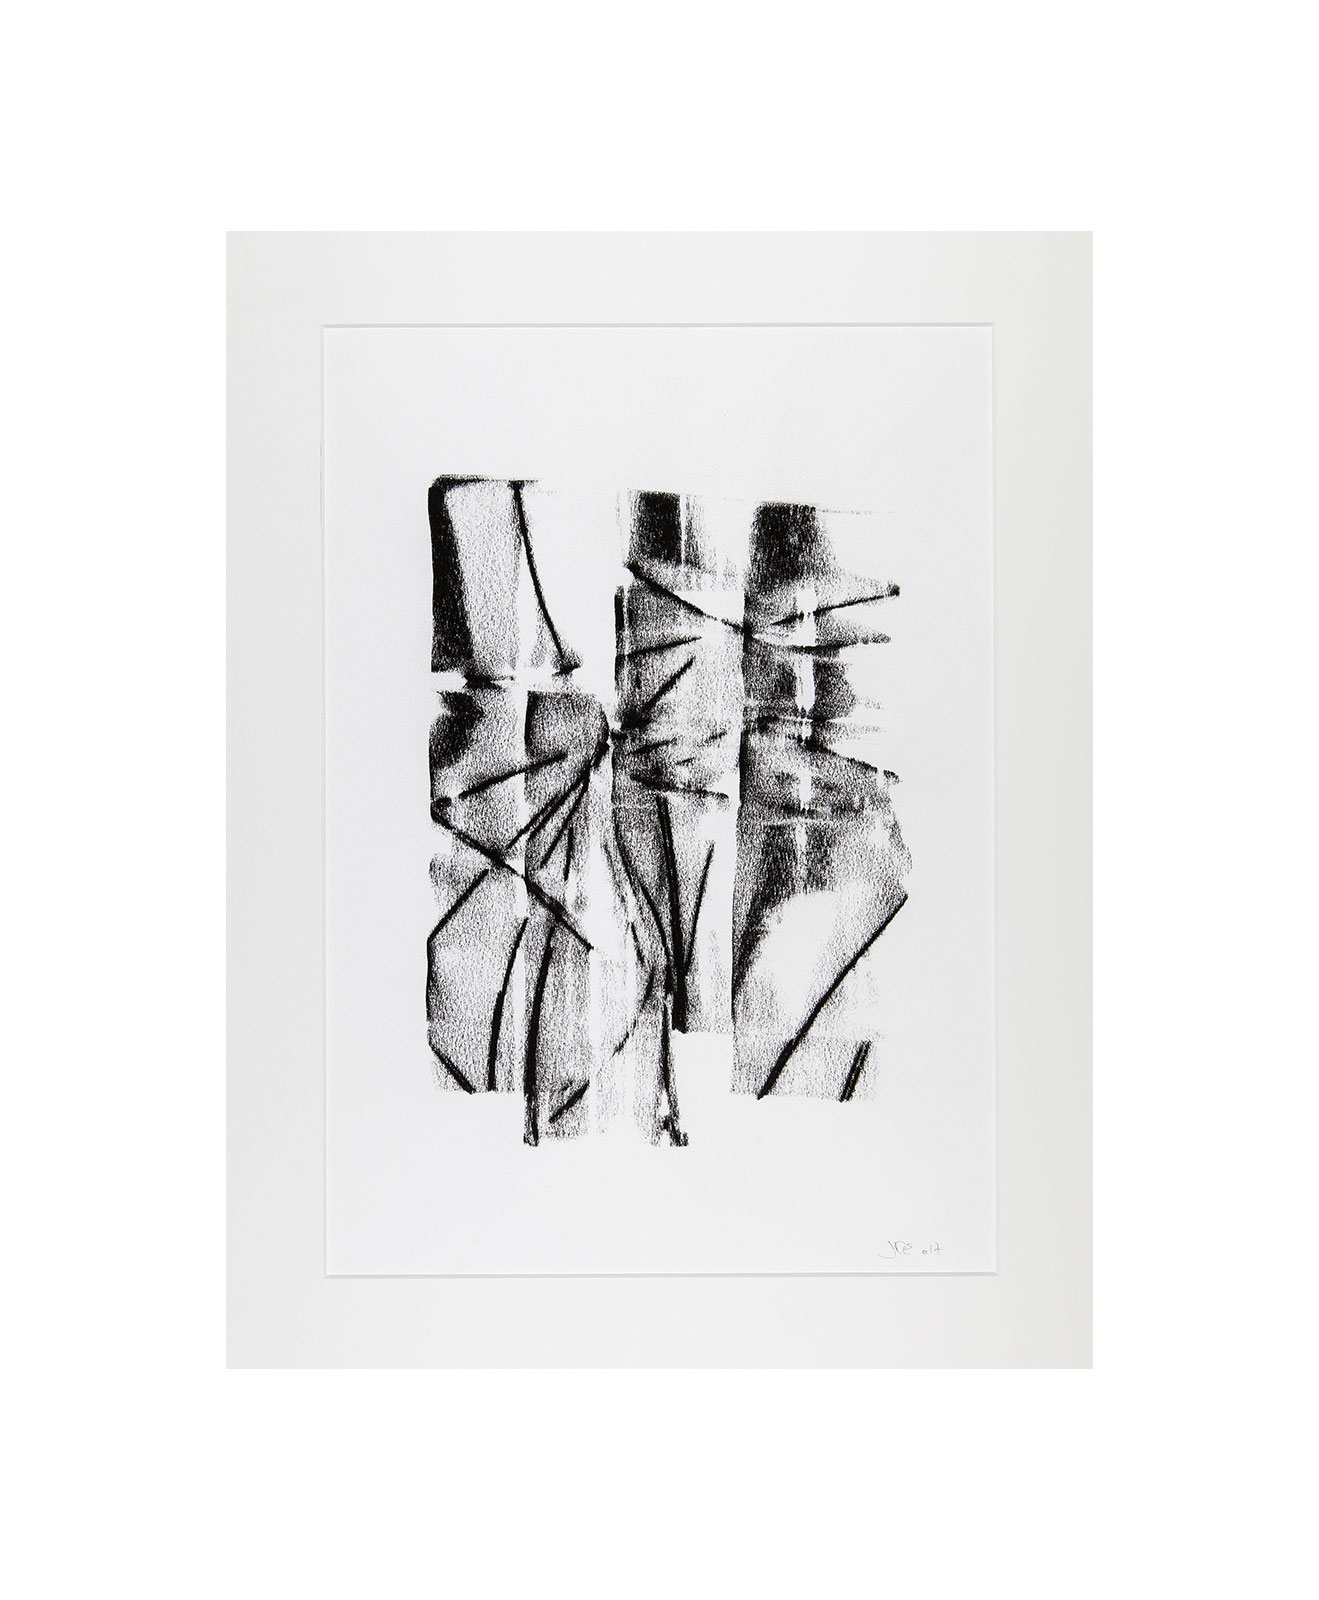 Cha 1.28, Charcoal on paper, black and white artwork, drawing, jf escande, contemporary art